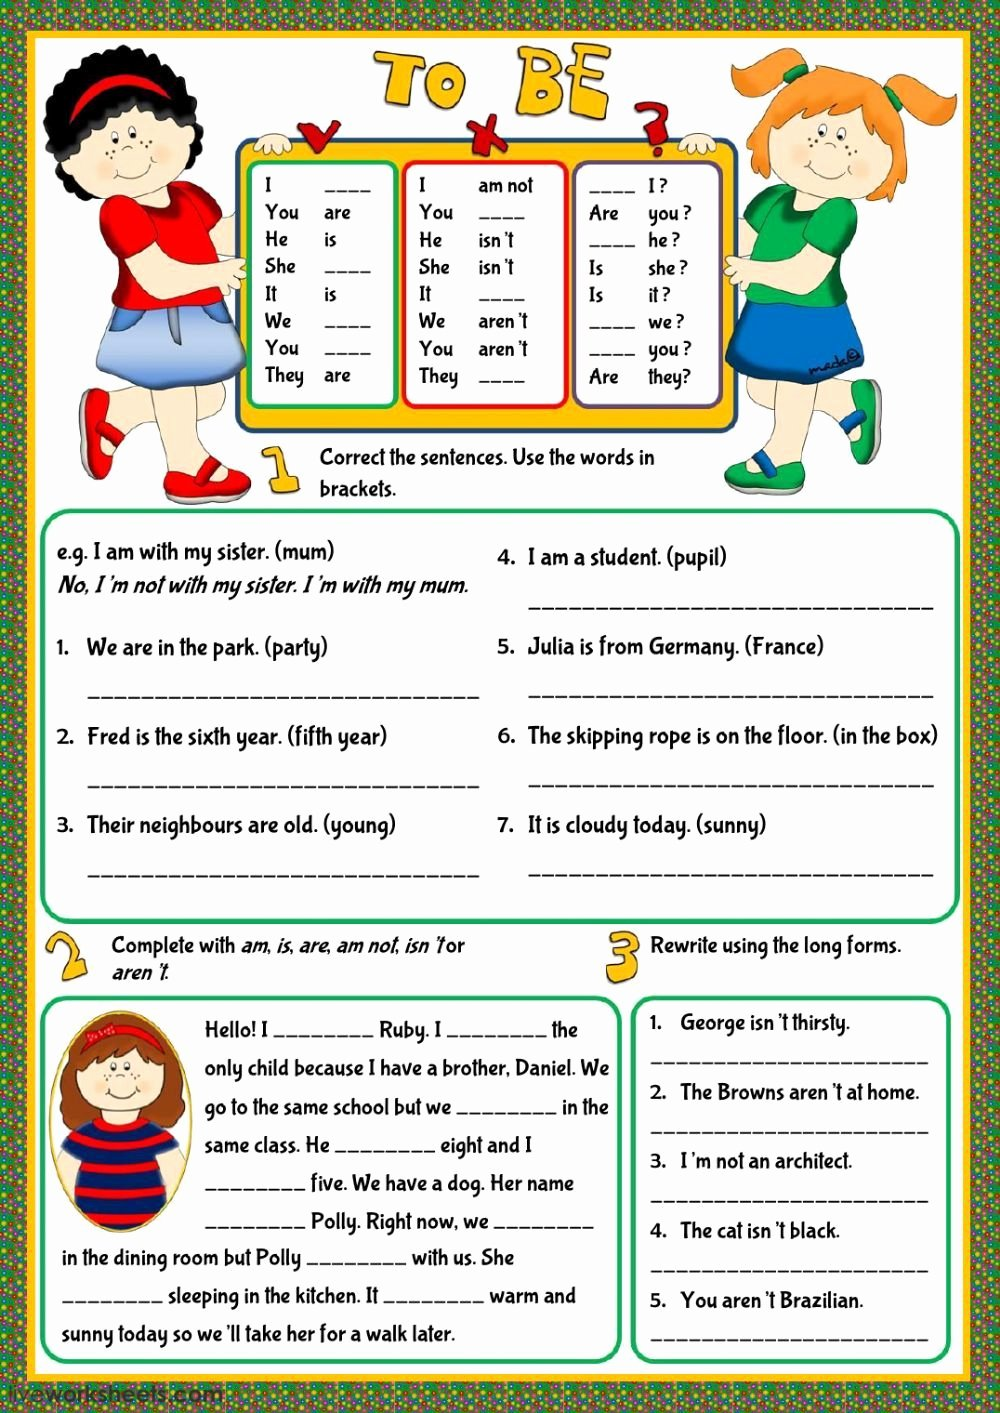 Simple Interest Worksheet Pdf New Verb to Be Interactive and Able Worksheet You Can